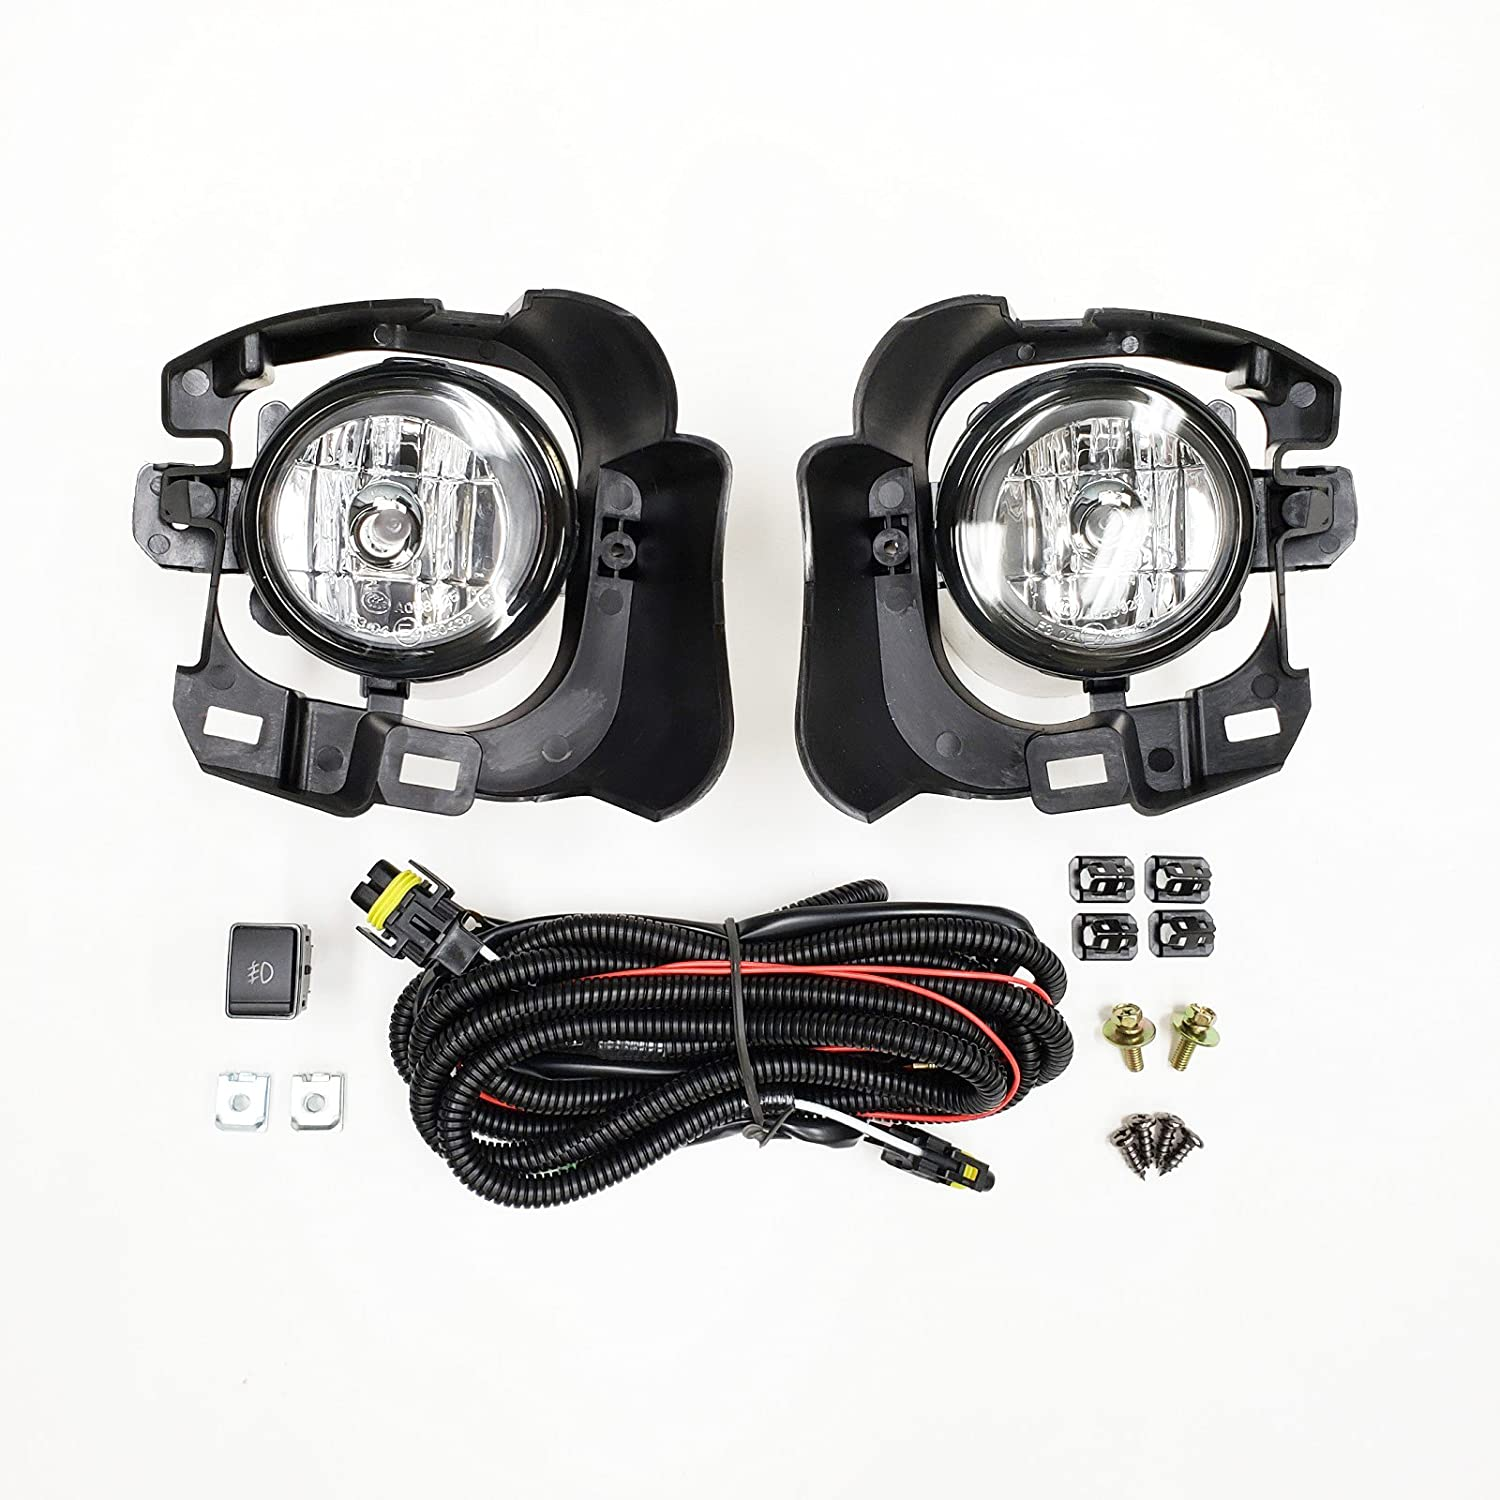 OE Style Clear Lens with Switch, Wires, Bulbs, Brackets LEDIN Fog Lights for 2014-2016 Nissan Versa Note Hatchback